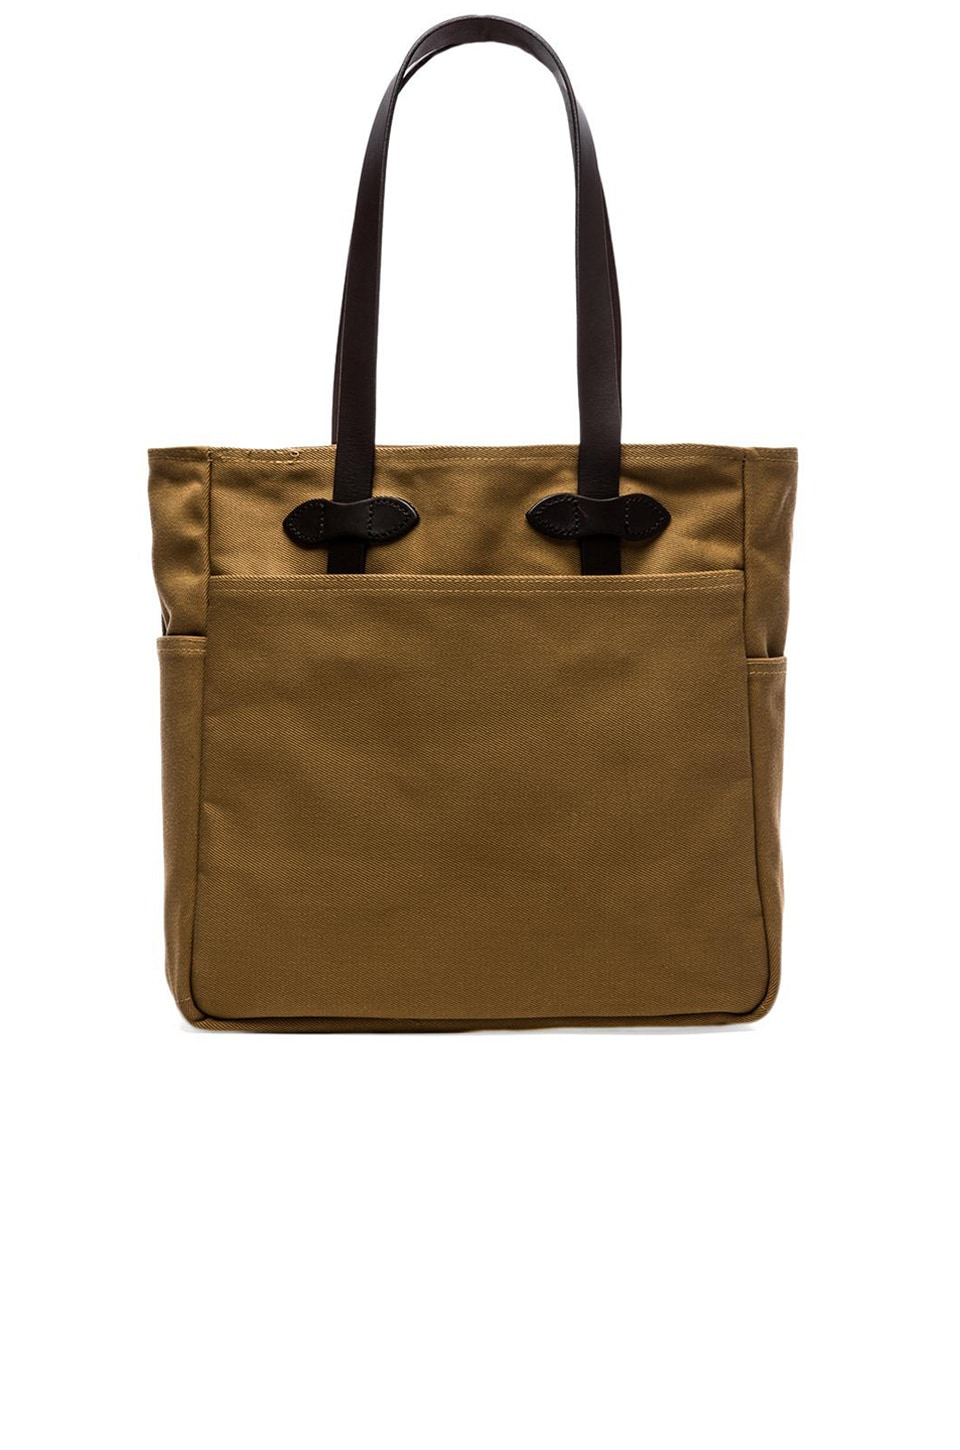 Filson Open Tote Bag in Dark Tan